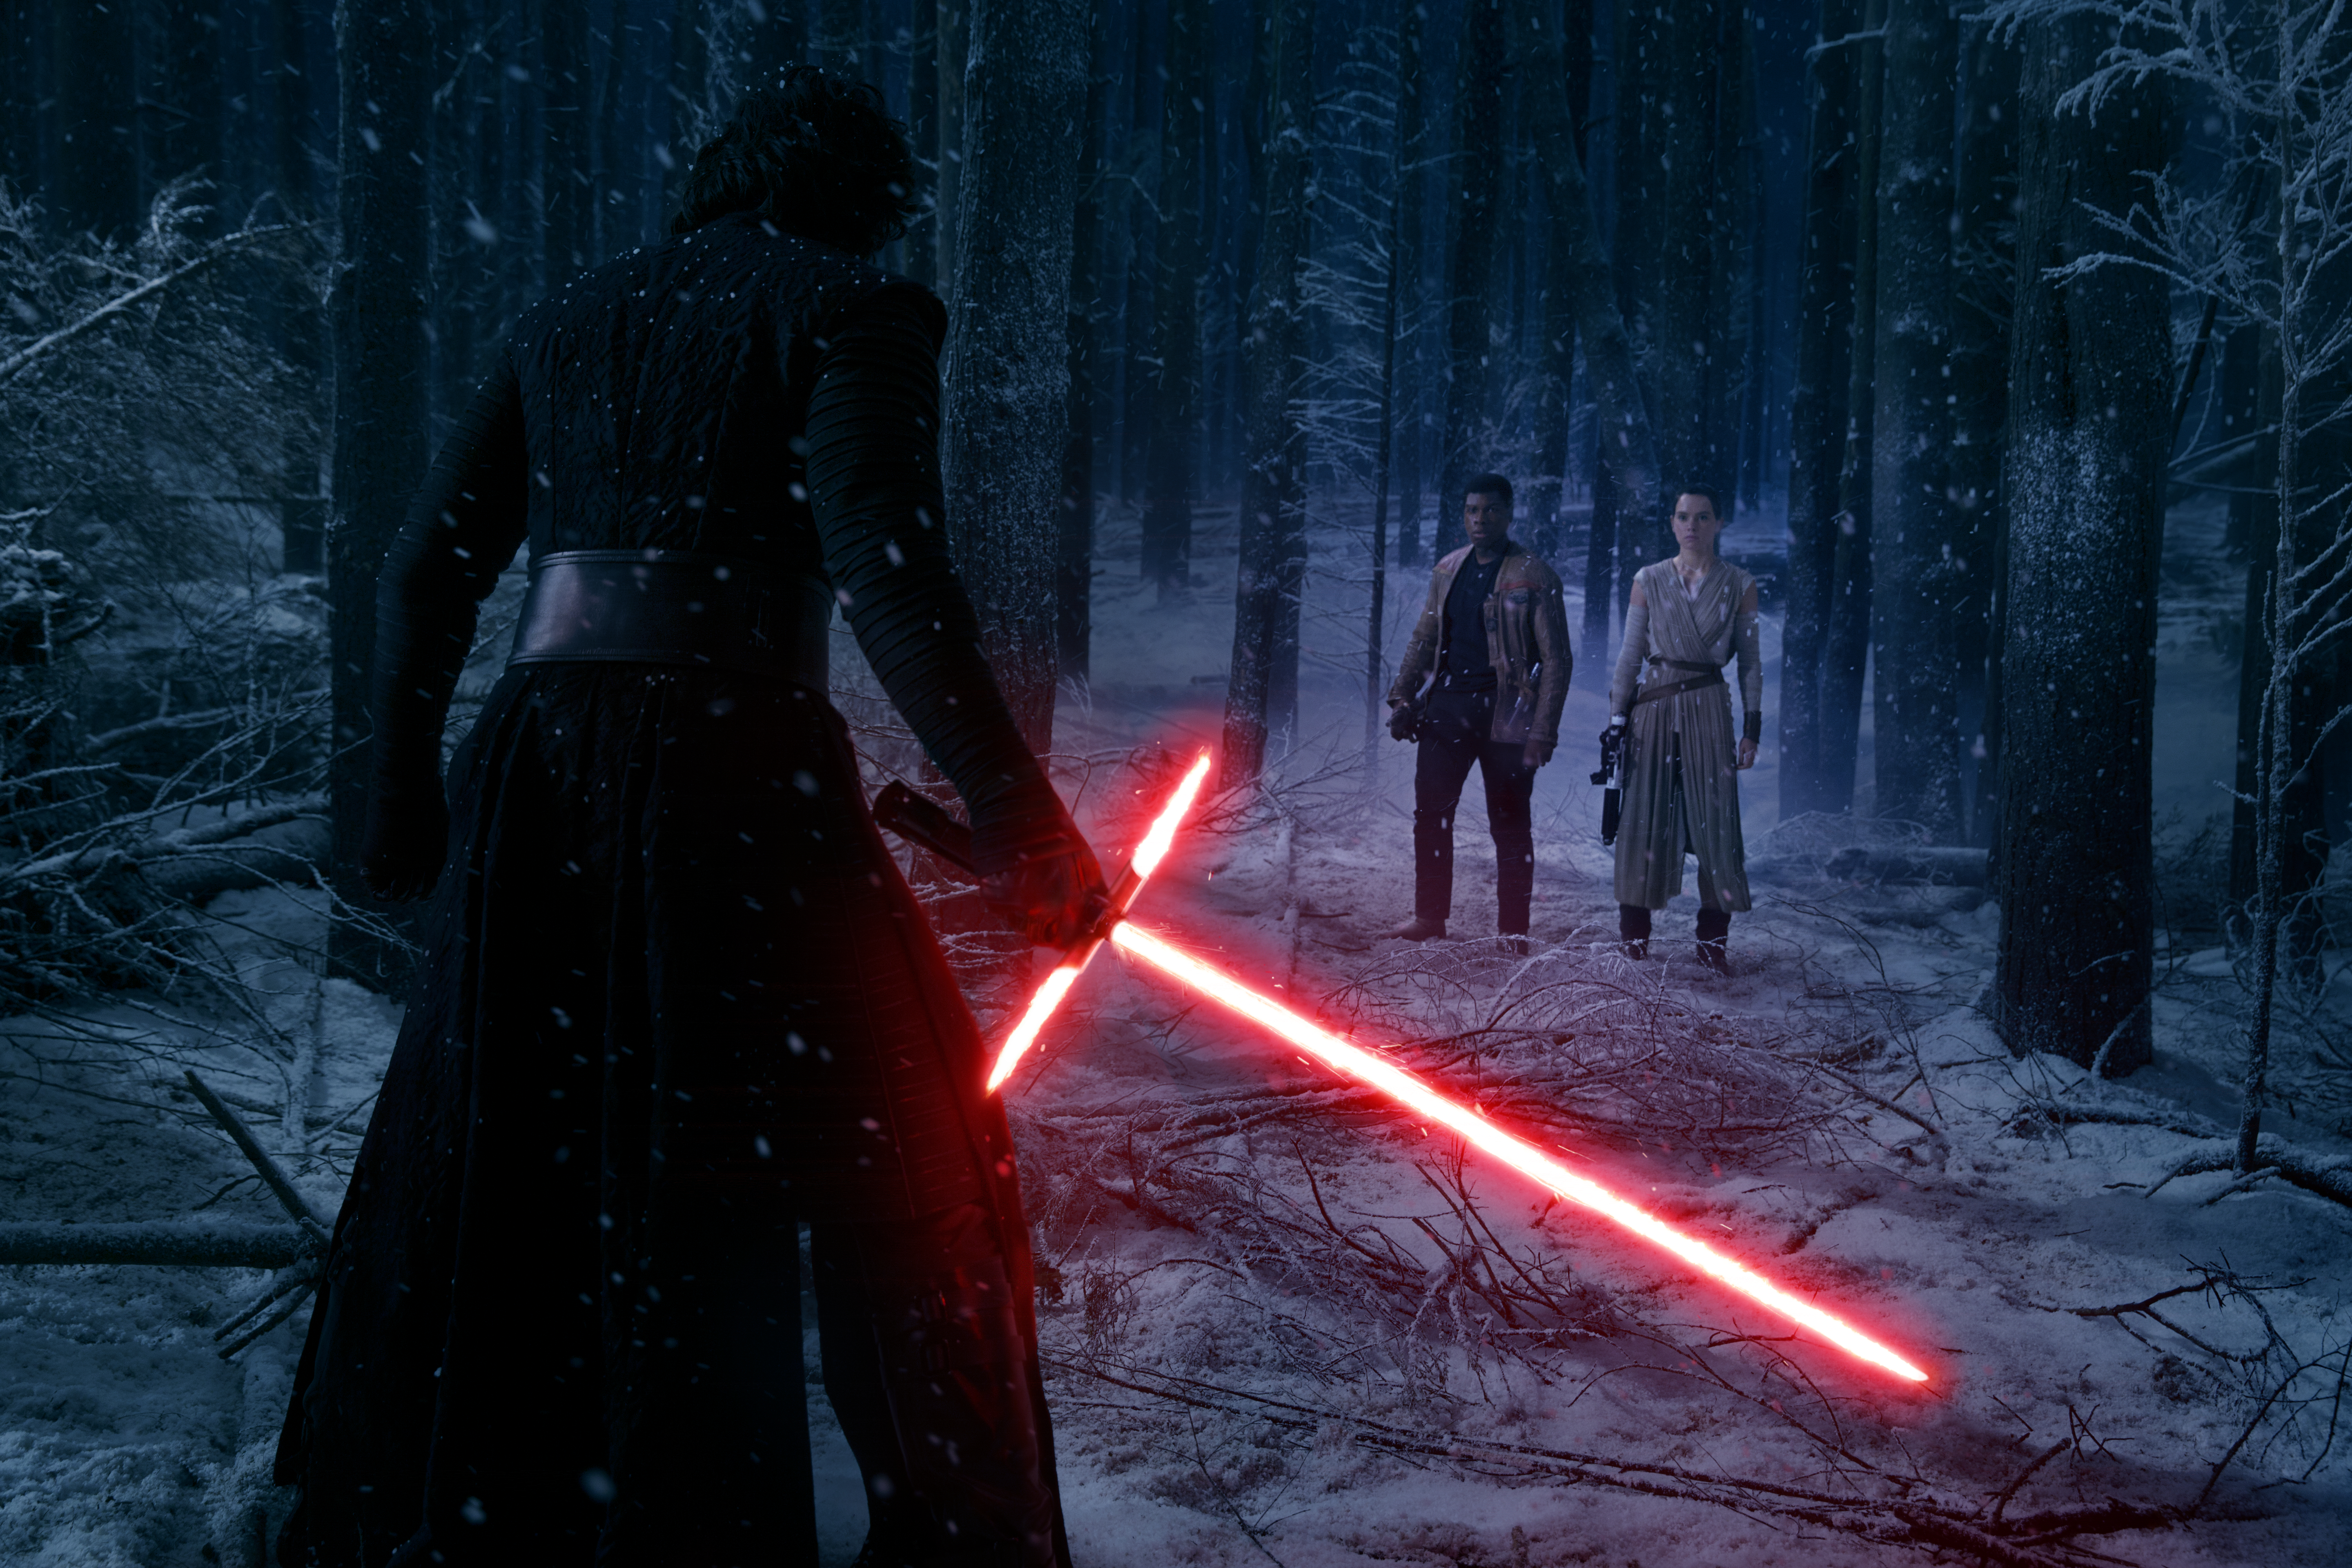 Star Wars: The Force Awakens..L to R: Kylo Ren (Adam Driver), Finn (John Boyega), and Rey (Daisy Ridley)..Ph: David James..? 2015 Lucasfilm Ltd. & TM. All Right Reserved.